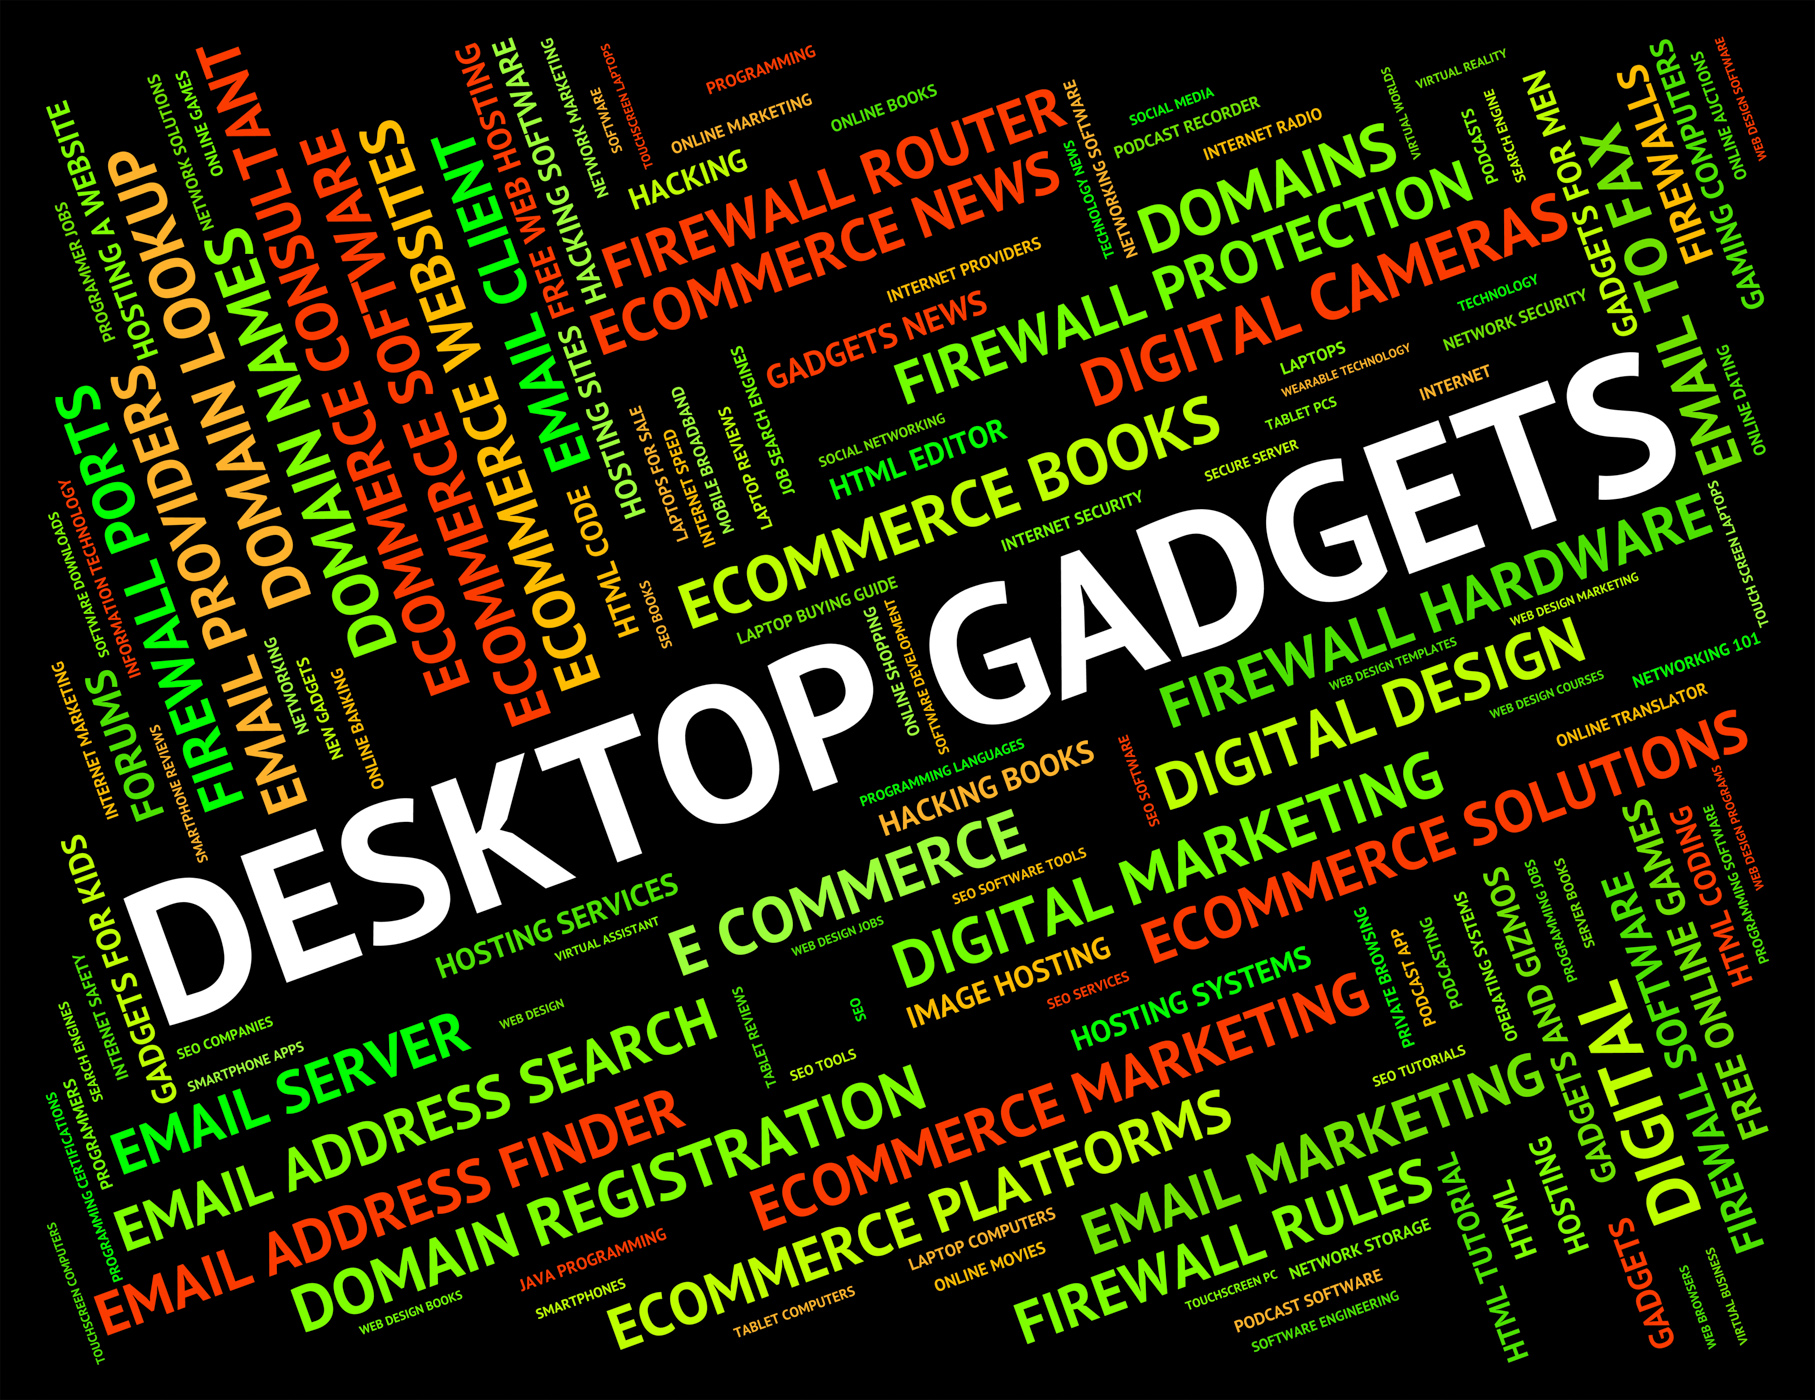 Desktop Gadgets Represents Mod Con And Appliance, Apparatus, Implements, Word, Widgets, HQ Photo